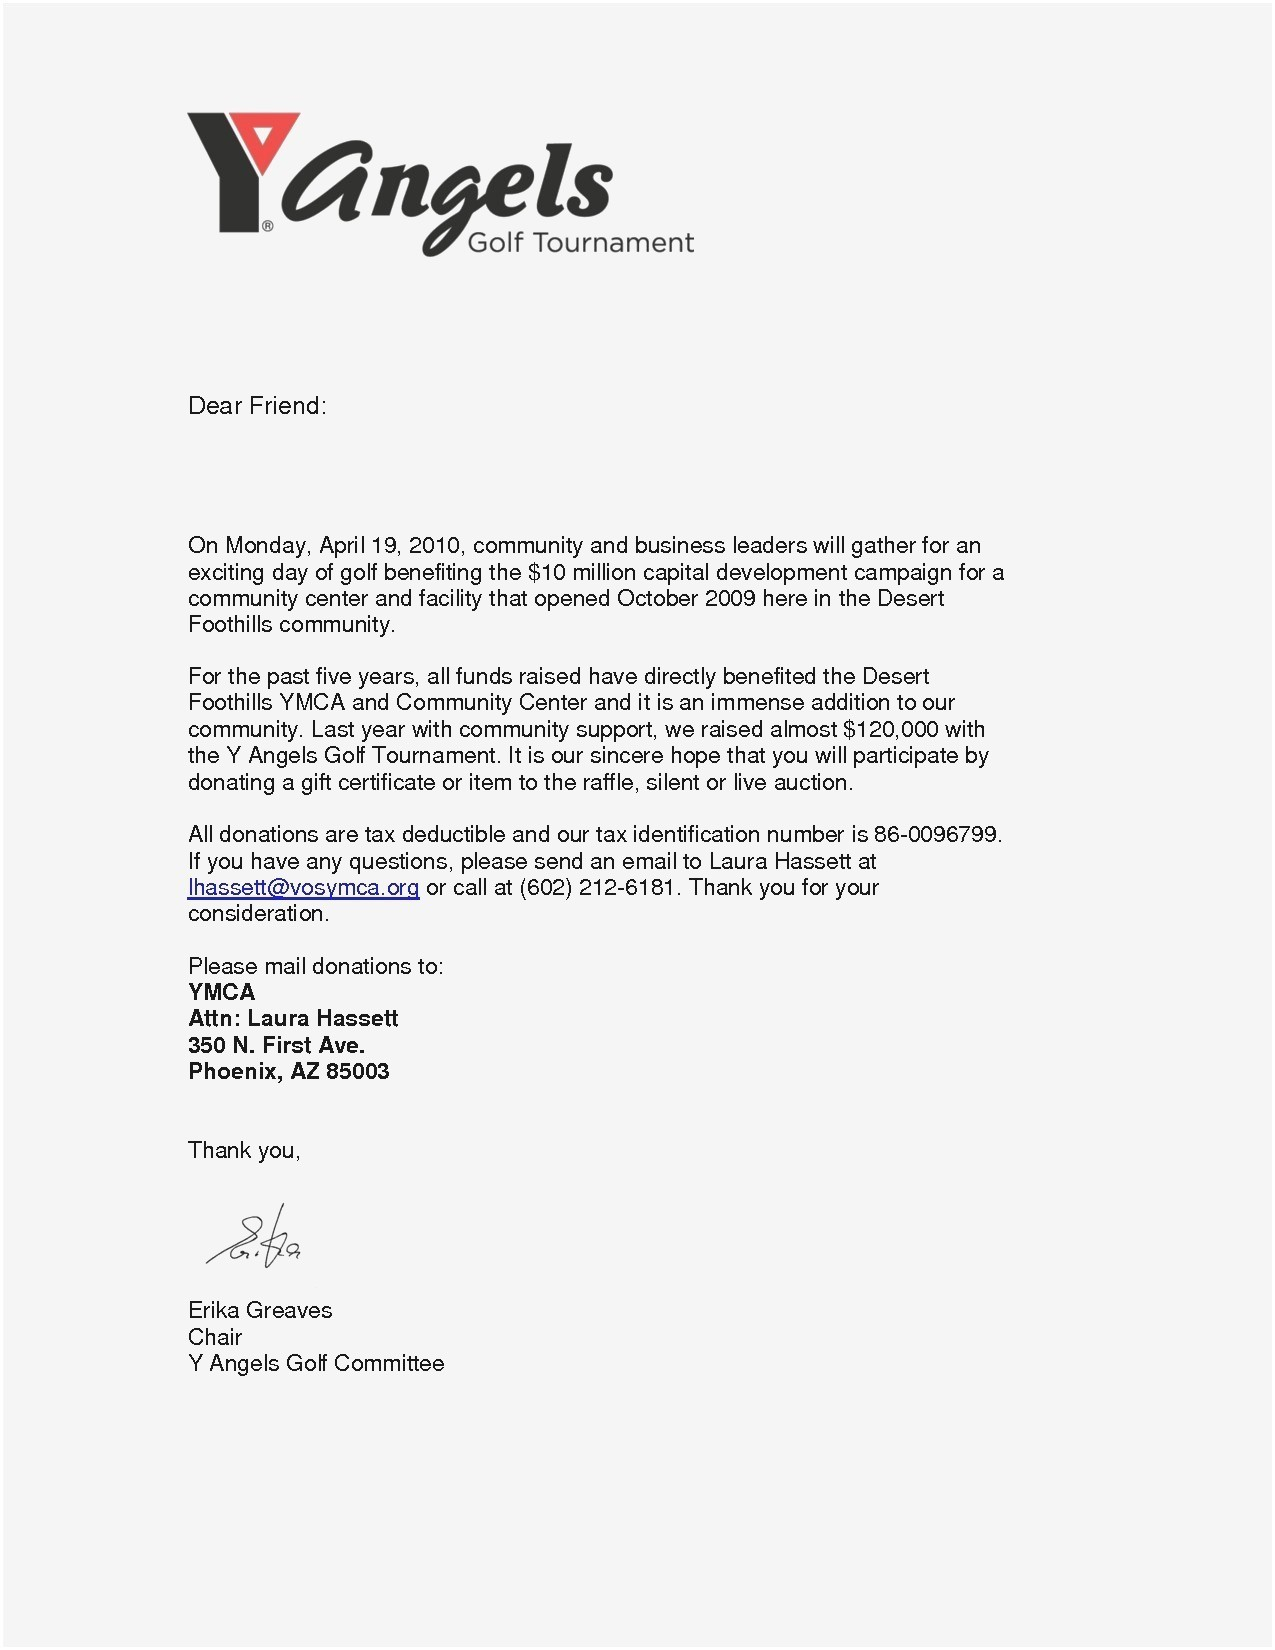 Silent Auction Donation Request Letter Template - Business Donation Letter Template Save Donation Request Letter